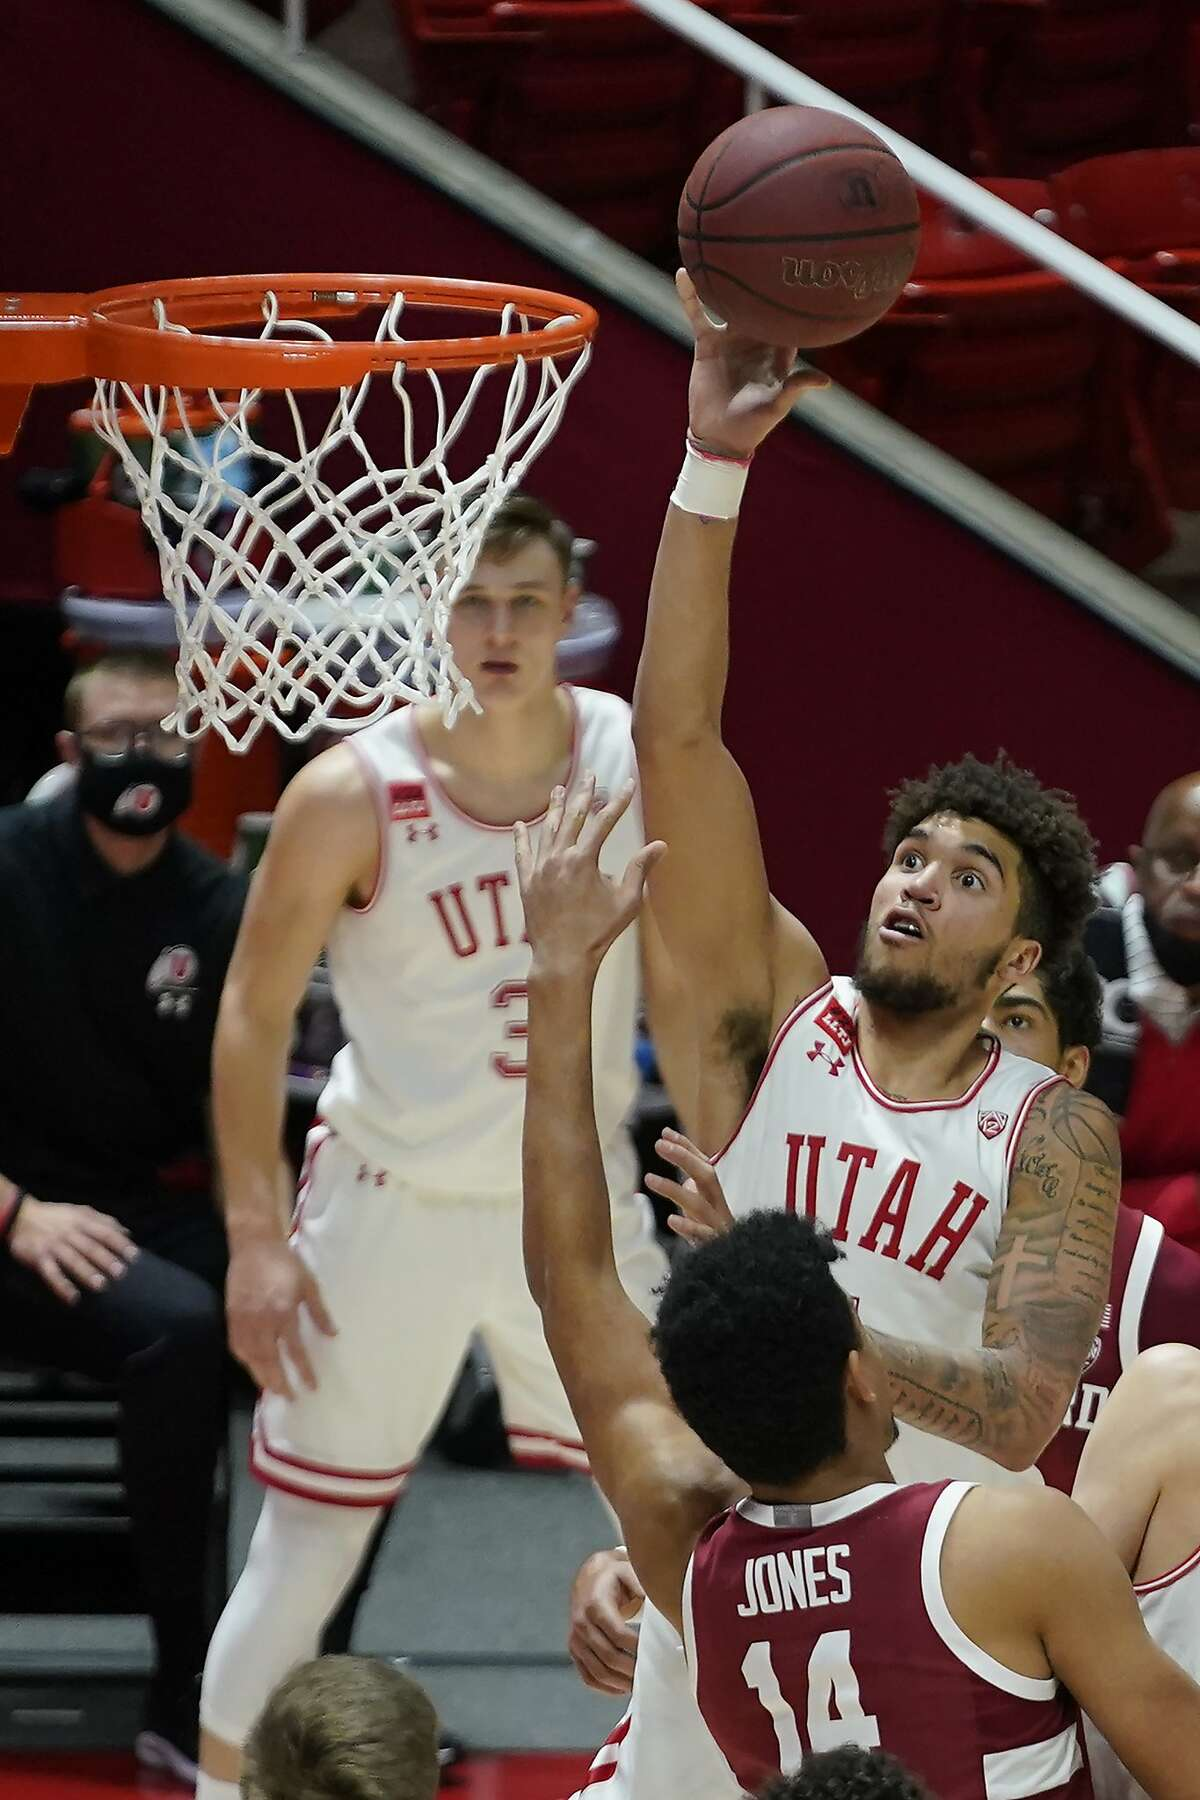 Utah forward Timmy Allen (1) shoots as Stanford forward Spencer Jones (14) defends in the second half during an NCAA college basketball game Thursday, Jan. 14, 2021, in Salt Lake City. (AP Photo/Rick Bowmer)